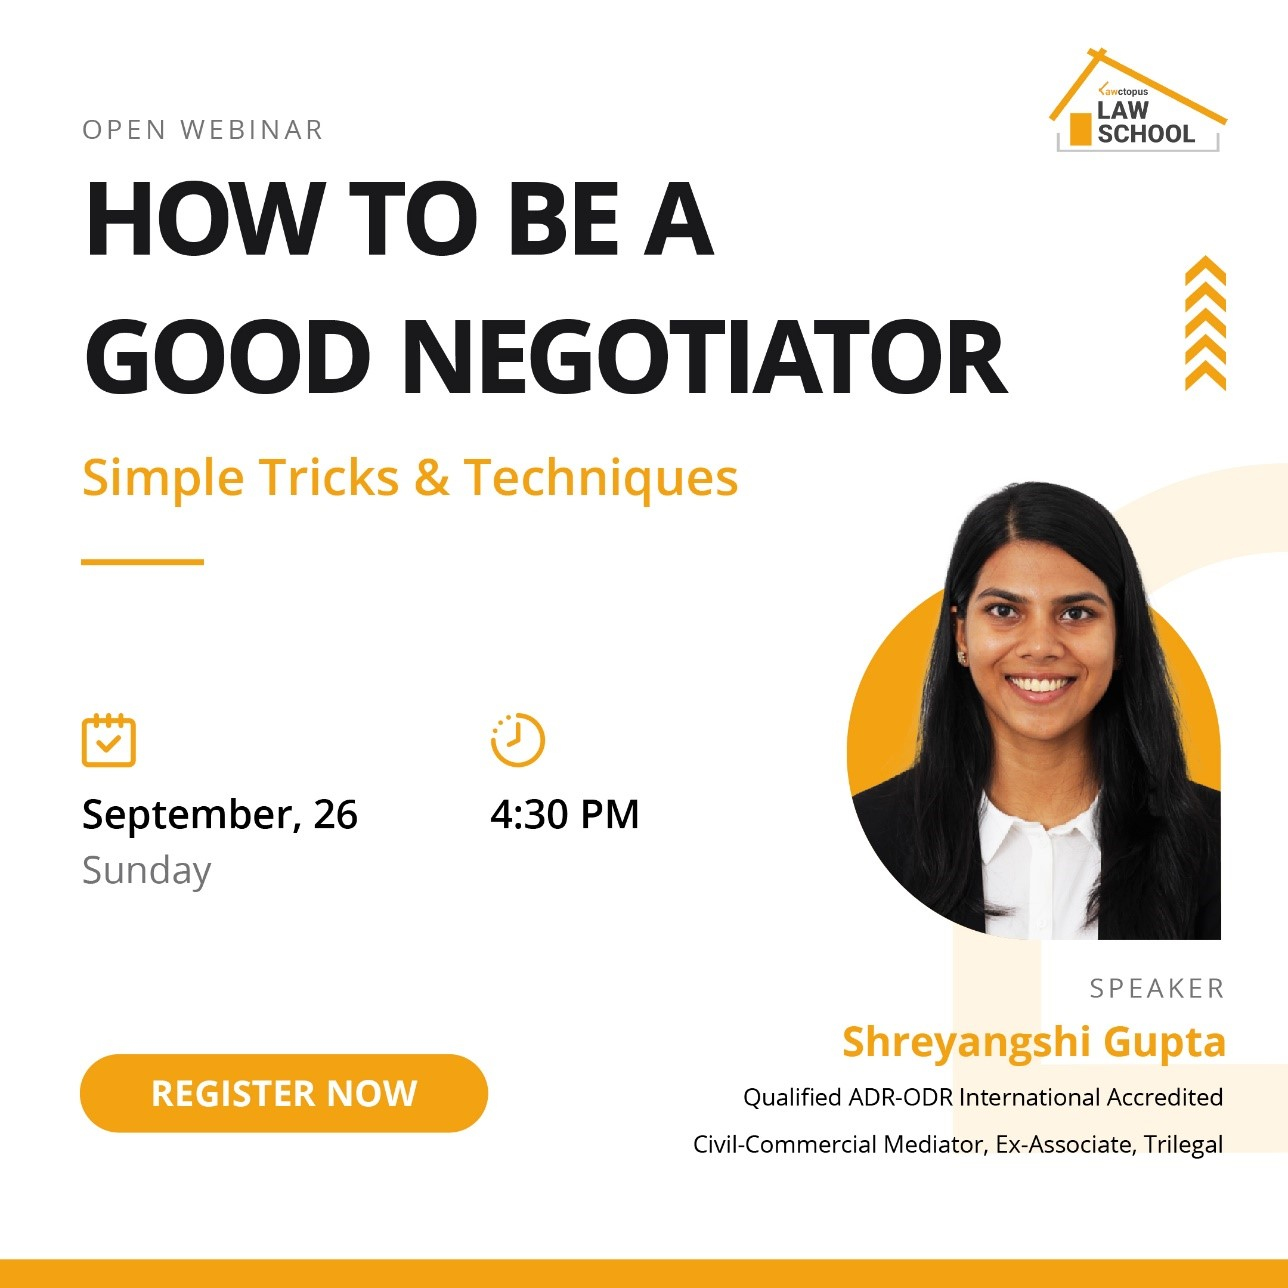 lawctopus law school webinar on how to be a good negotiator tips and tricks